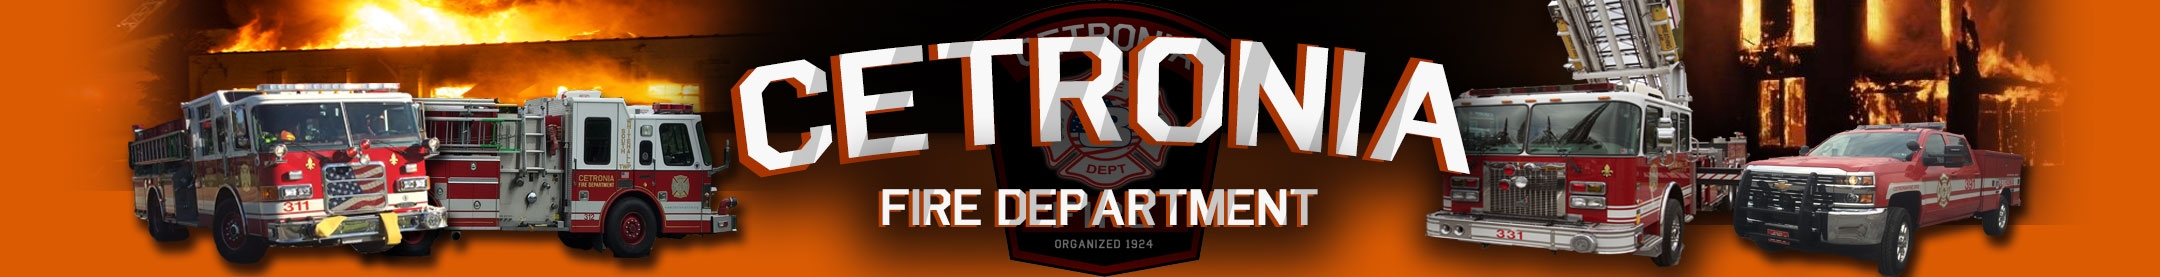 Cetronia Fire Department